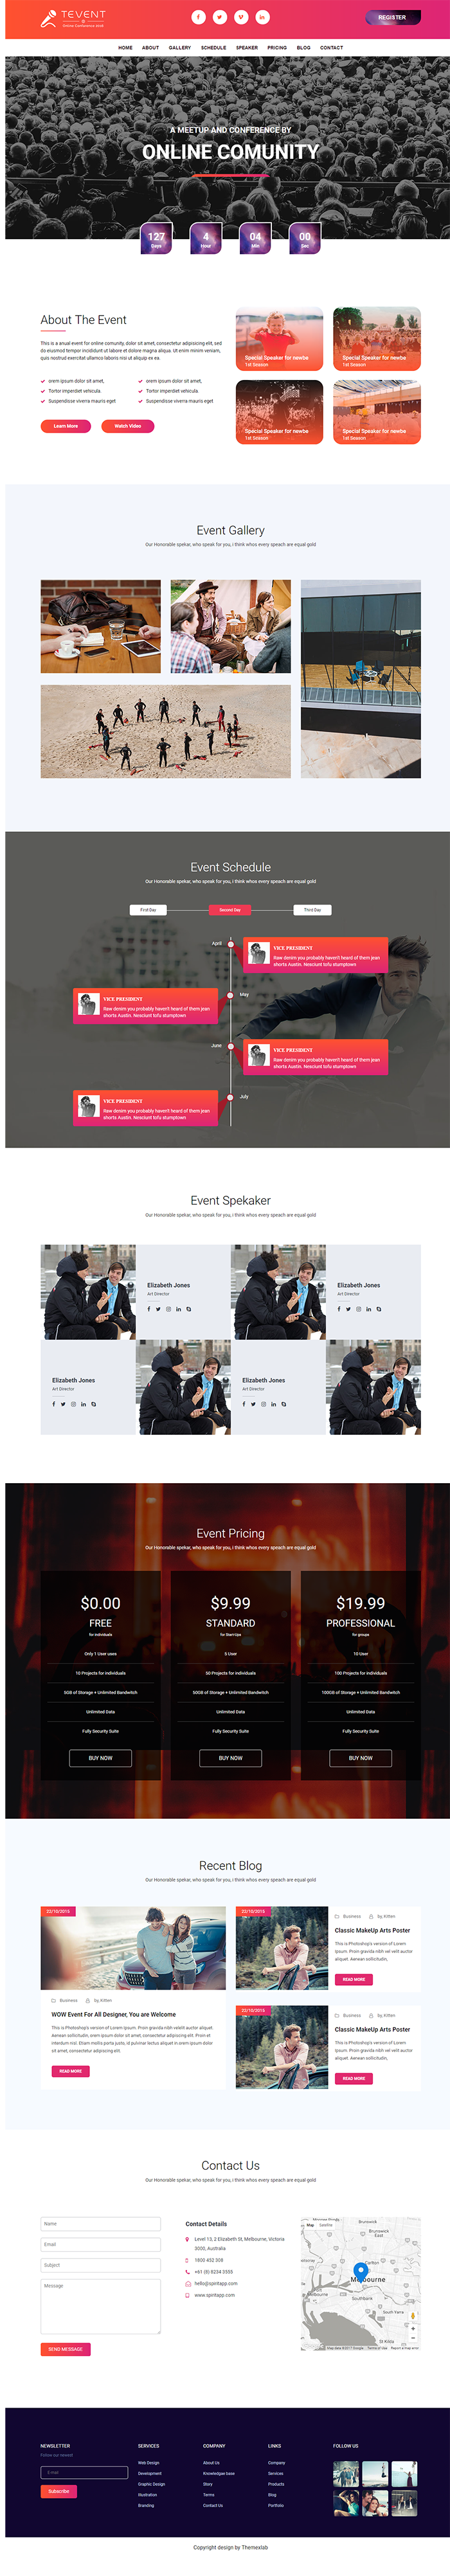 Tevent - Event Conference & Meetup HTML Template - 2